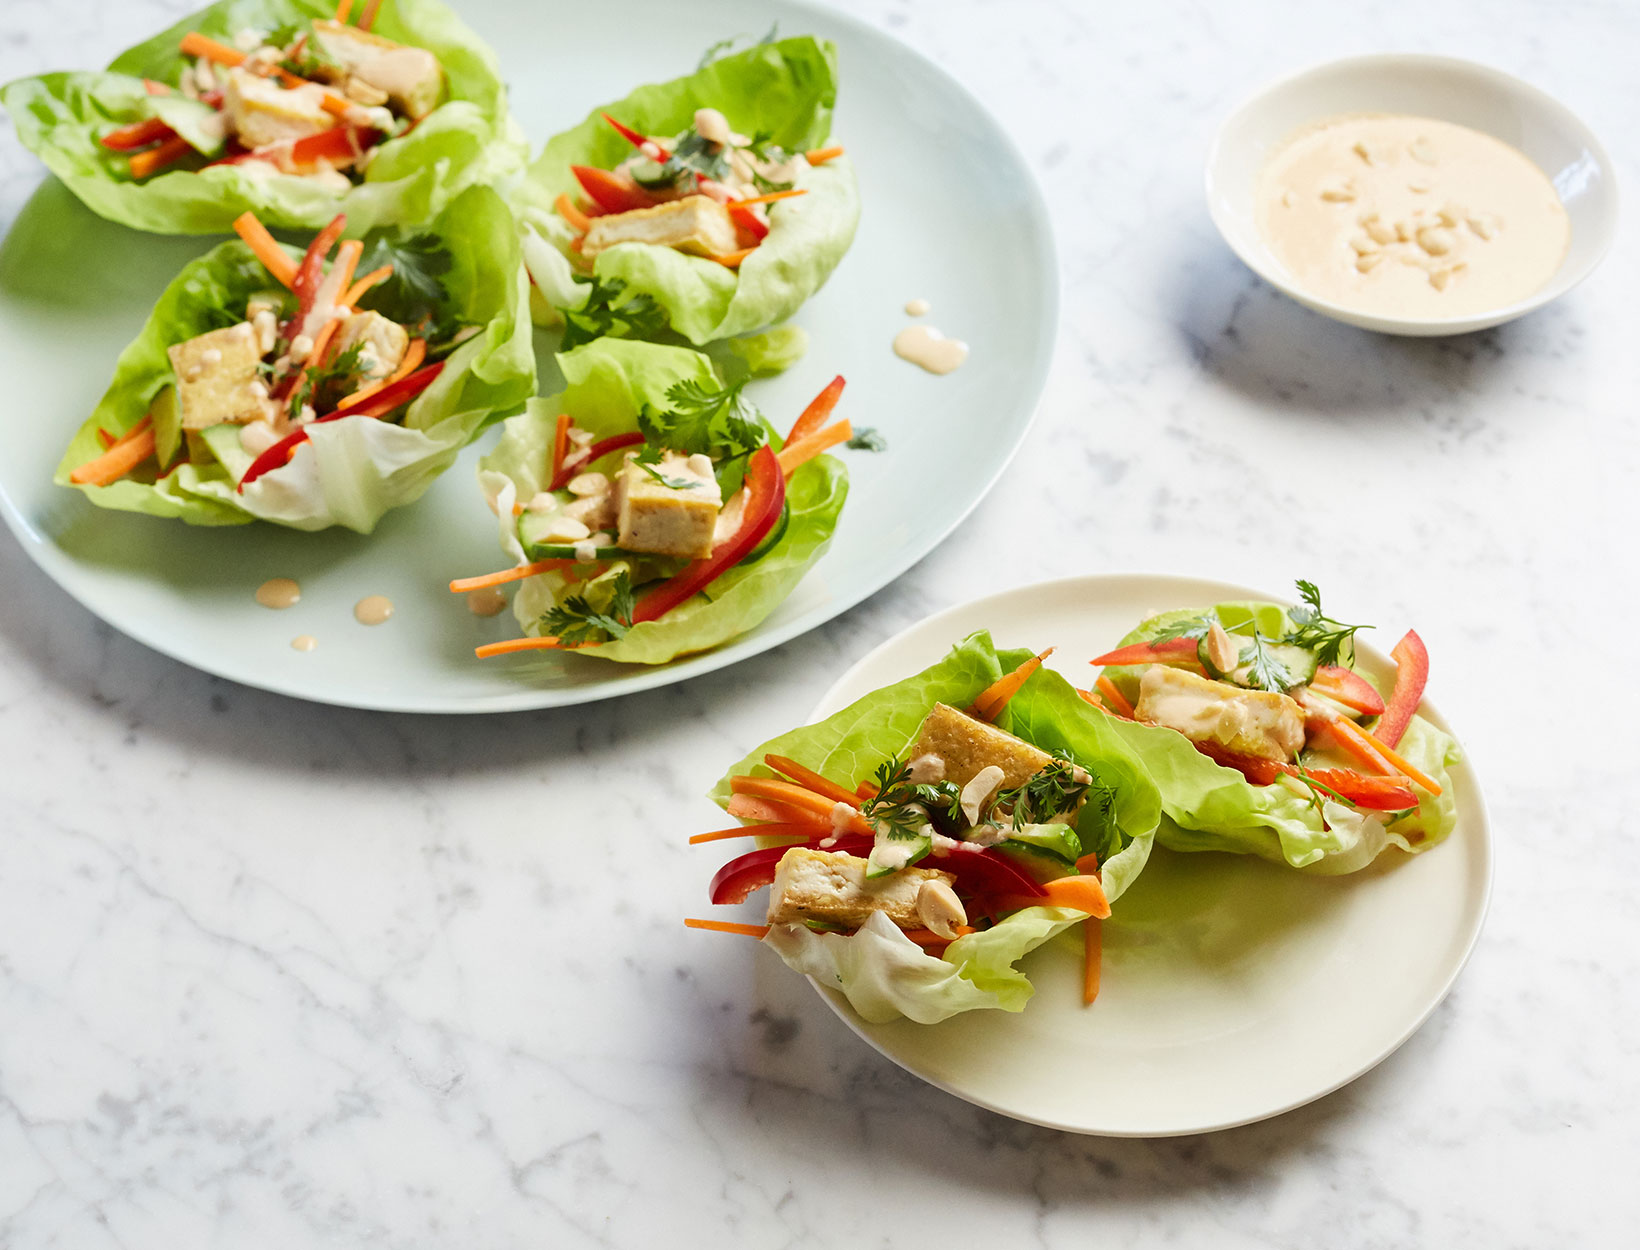 Pressed Tofu Lettuce Wraps